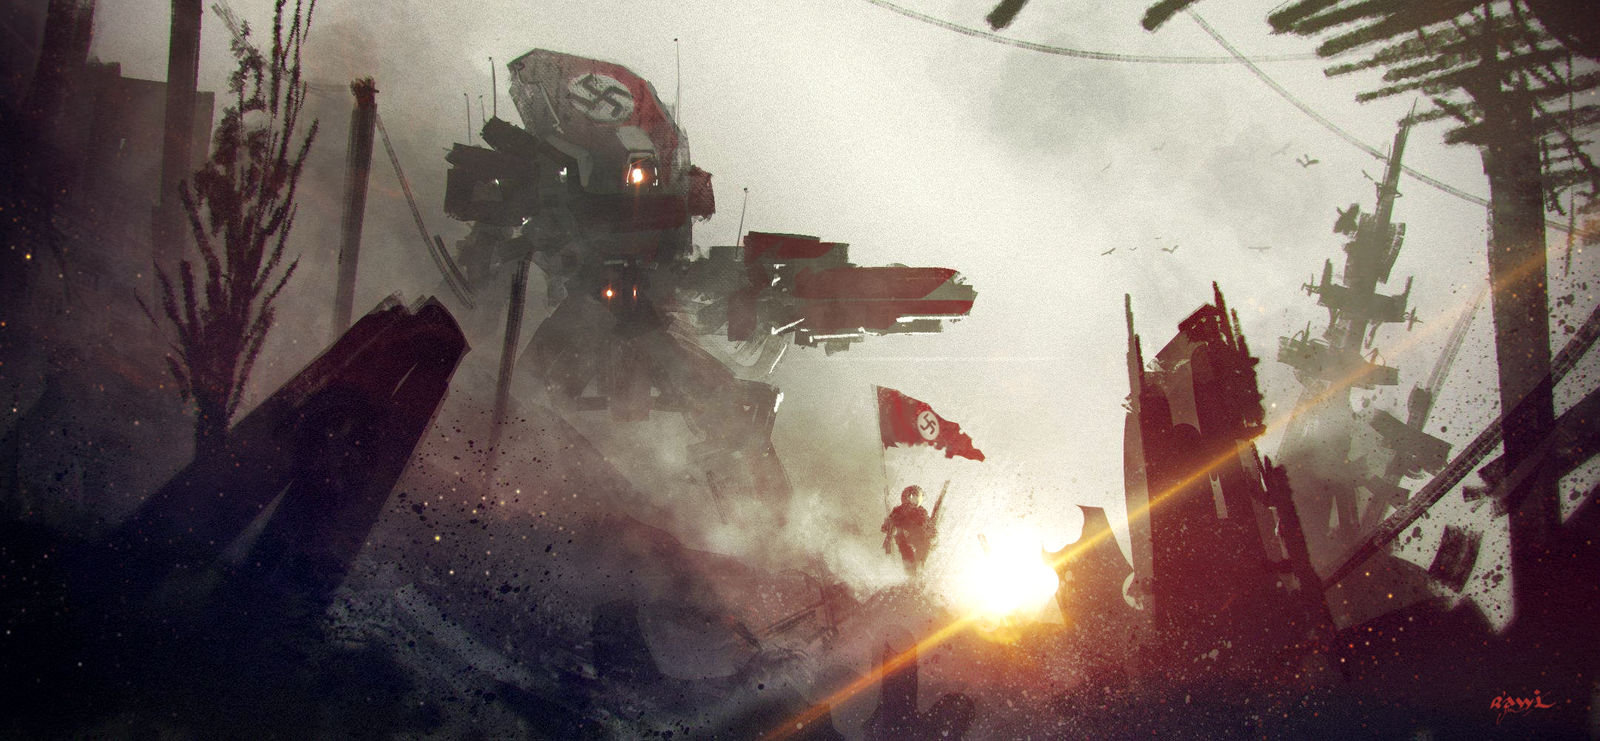 Ahmed rawi nazi mech red